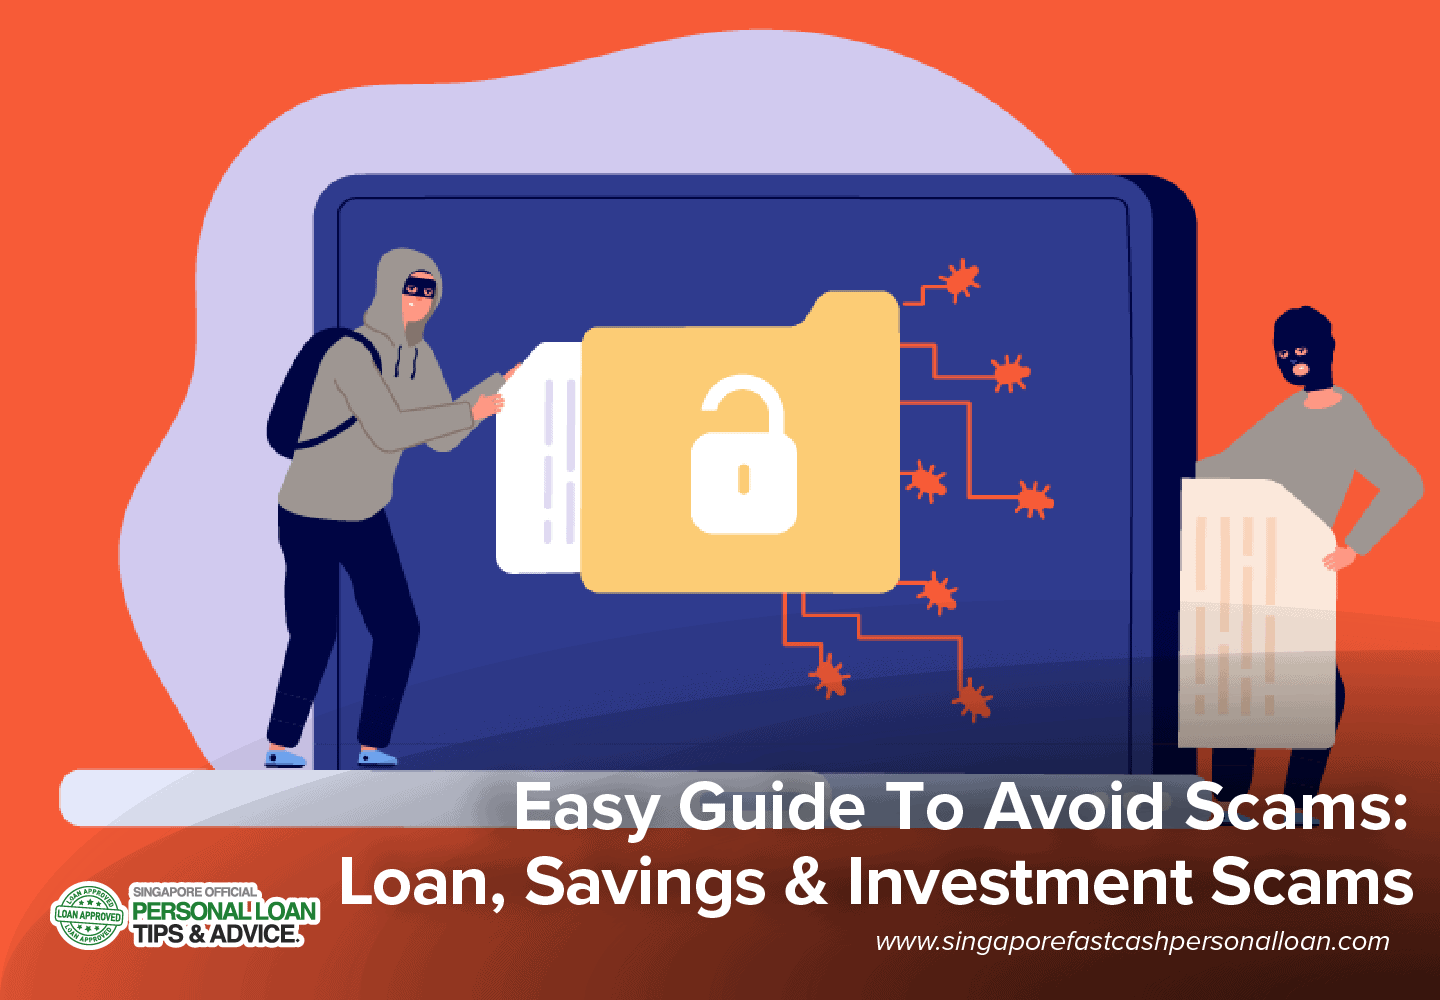 How To Avoid Loan Scams In Singapore